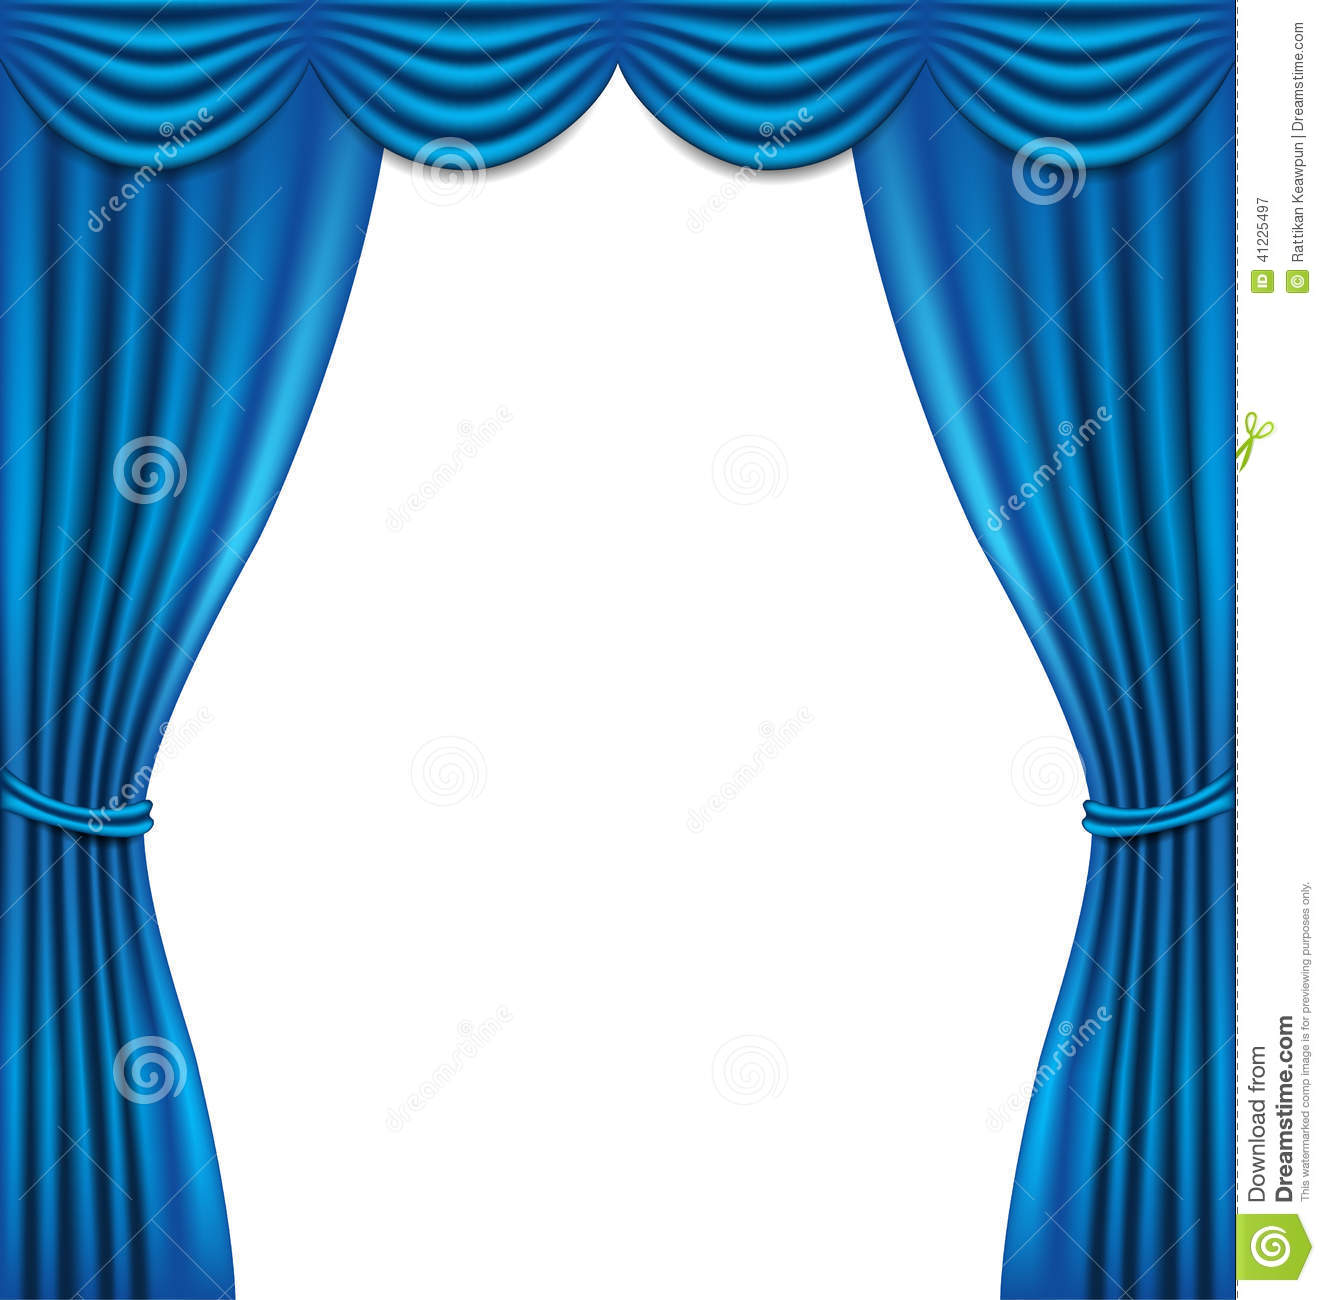 Blue stage curtains blue stage curtain vector free vector in - Luxury Blue Curtain On White Background Stock Vector